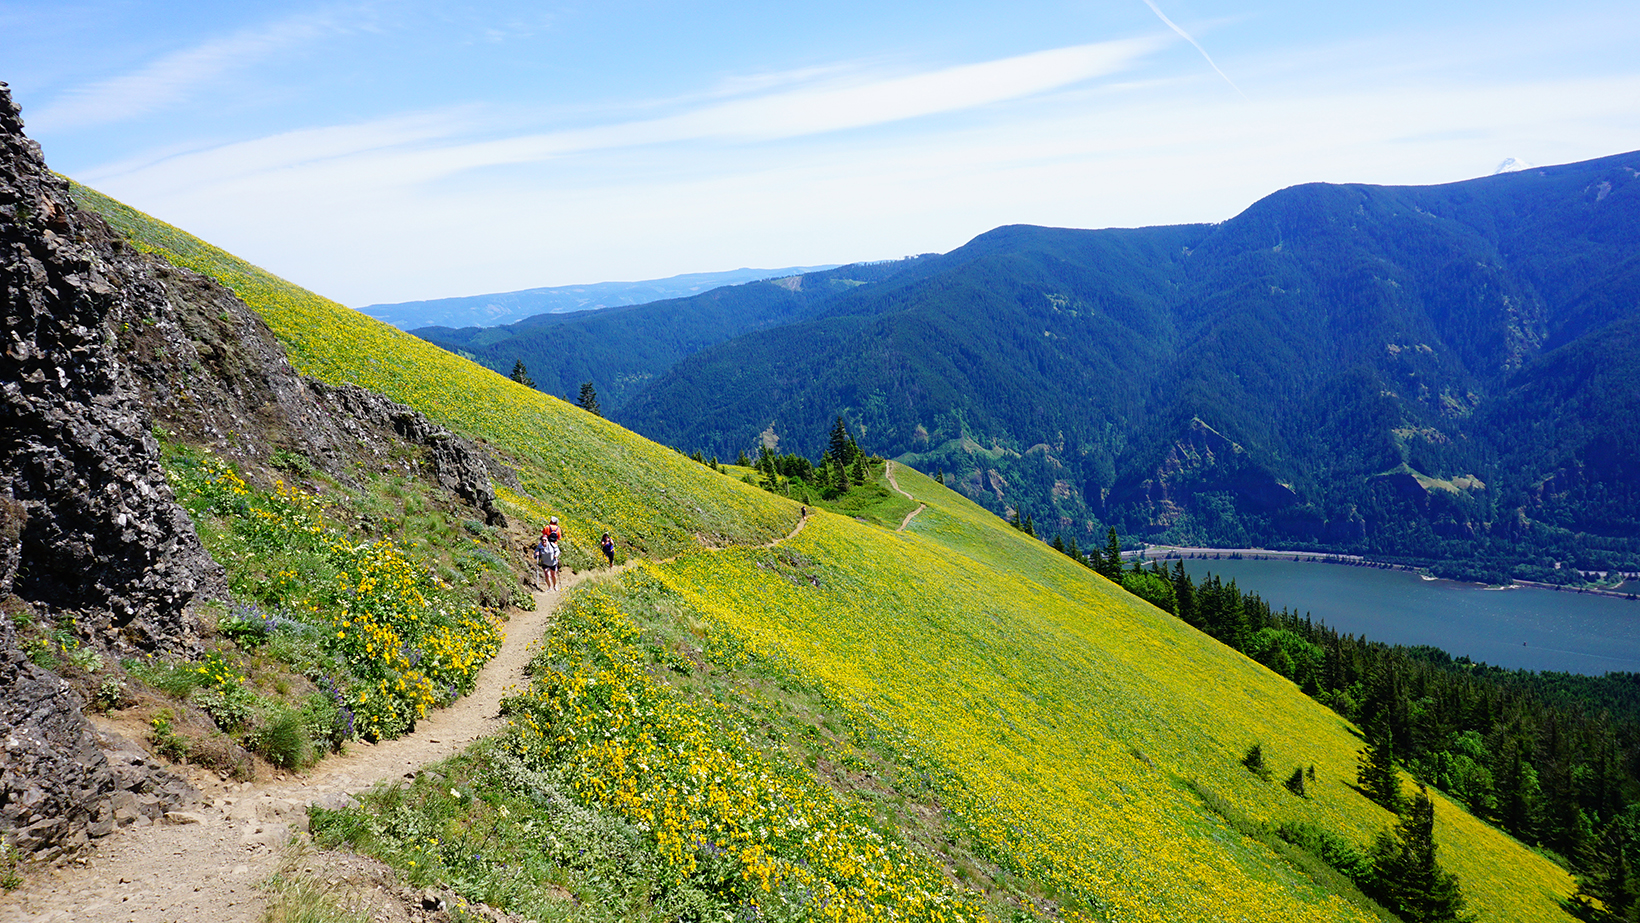 Luscious green slopes of Dog Mountain in full spring bloom with yellow sunflowers and an awesome view of the Gorge